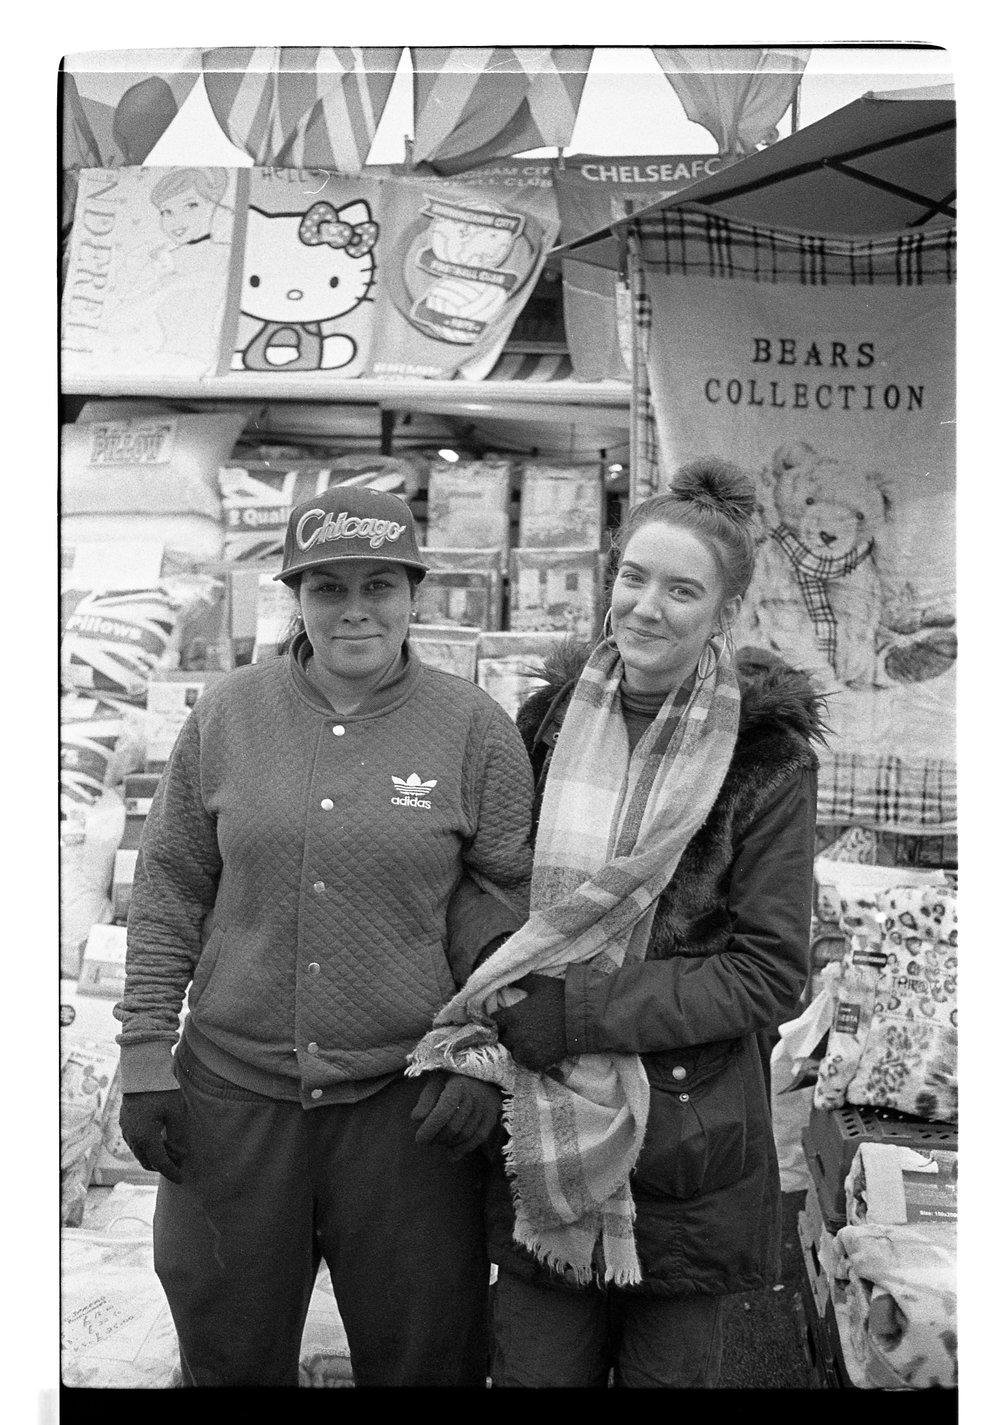 Images of the Birmingham markets and their traders..  ..and my first attempt at developing and scanning.